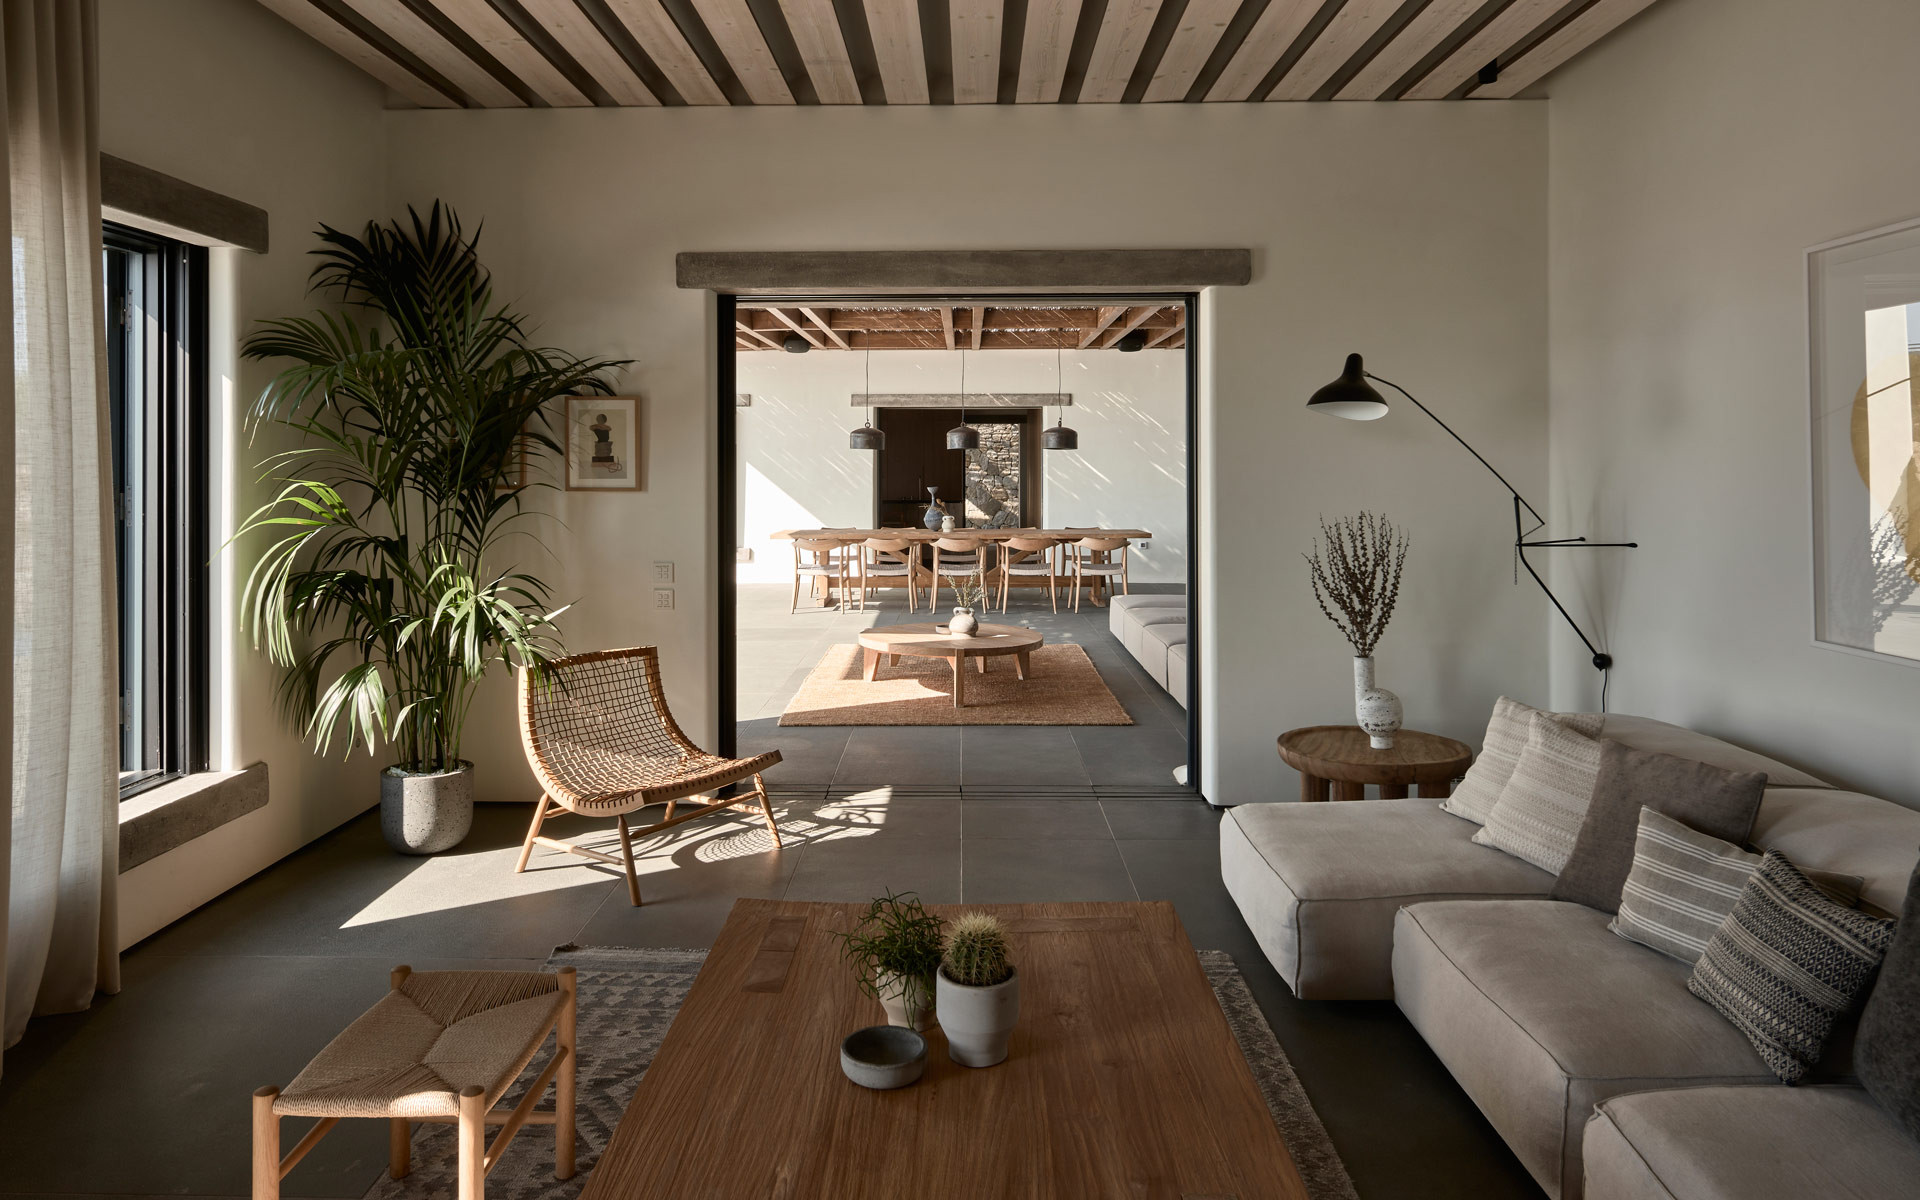 How does wellbeing look like translated into a home